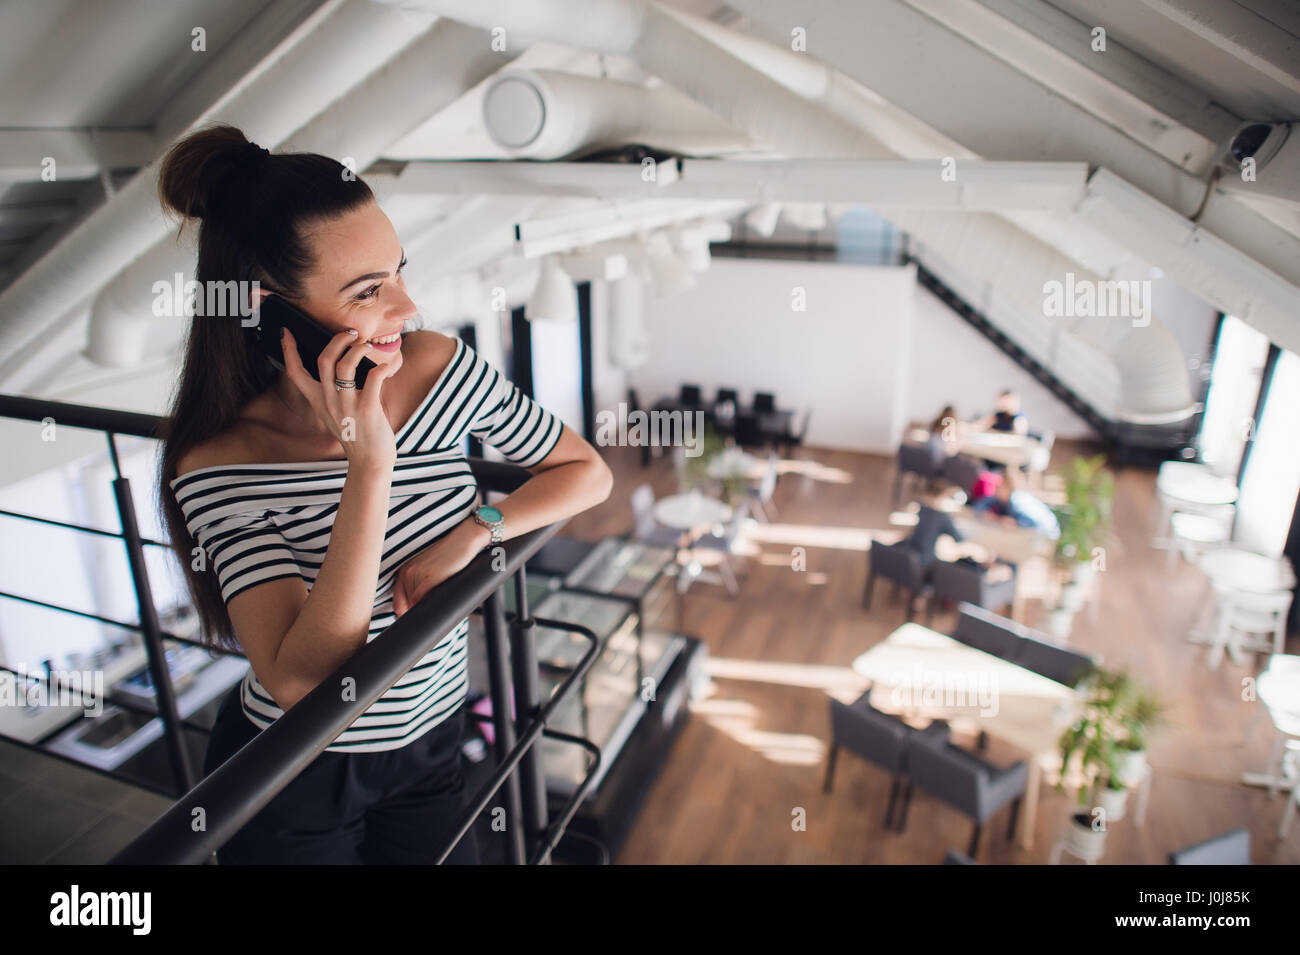 Beautiful smiling young woman leaning on the bar counter and having a phone call - Stock Image